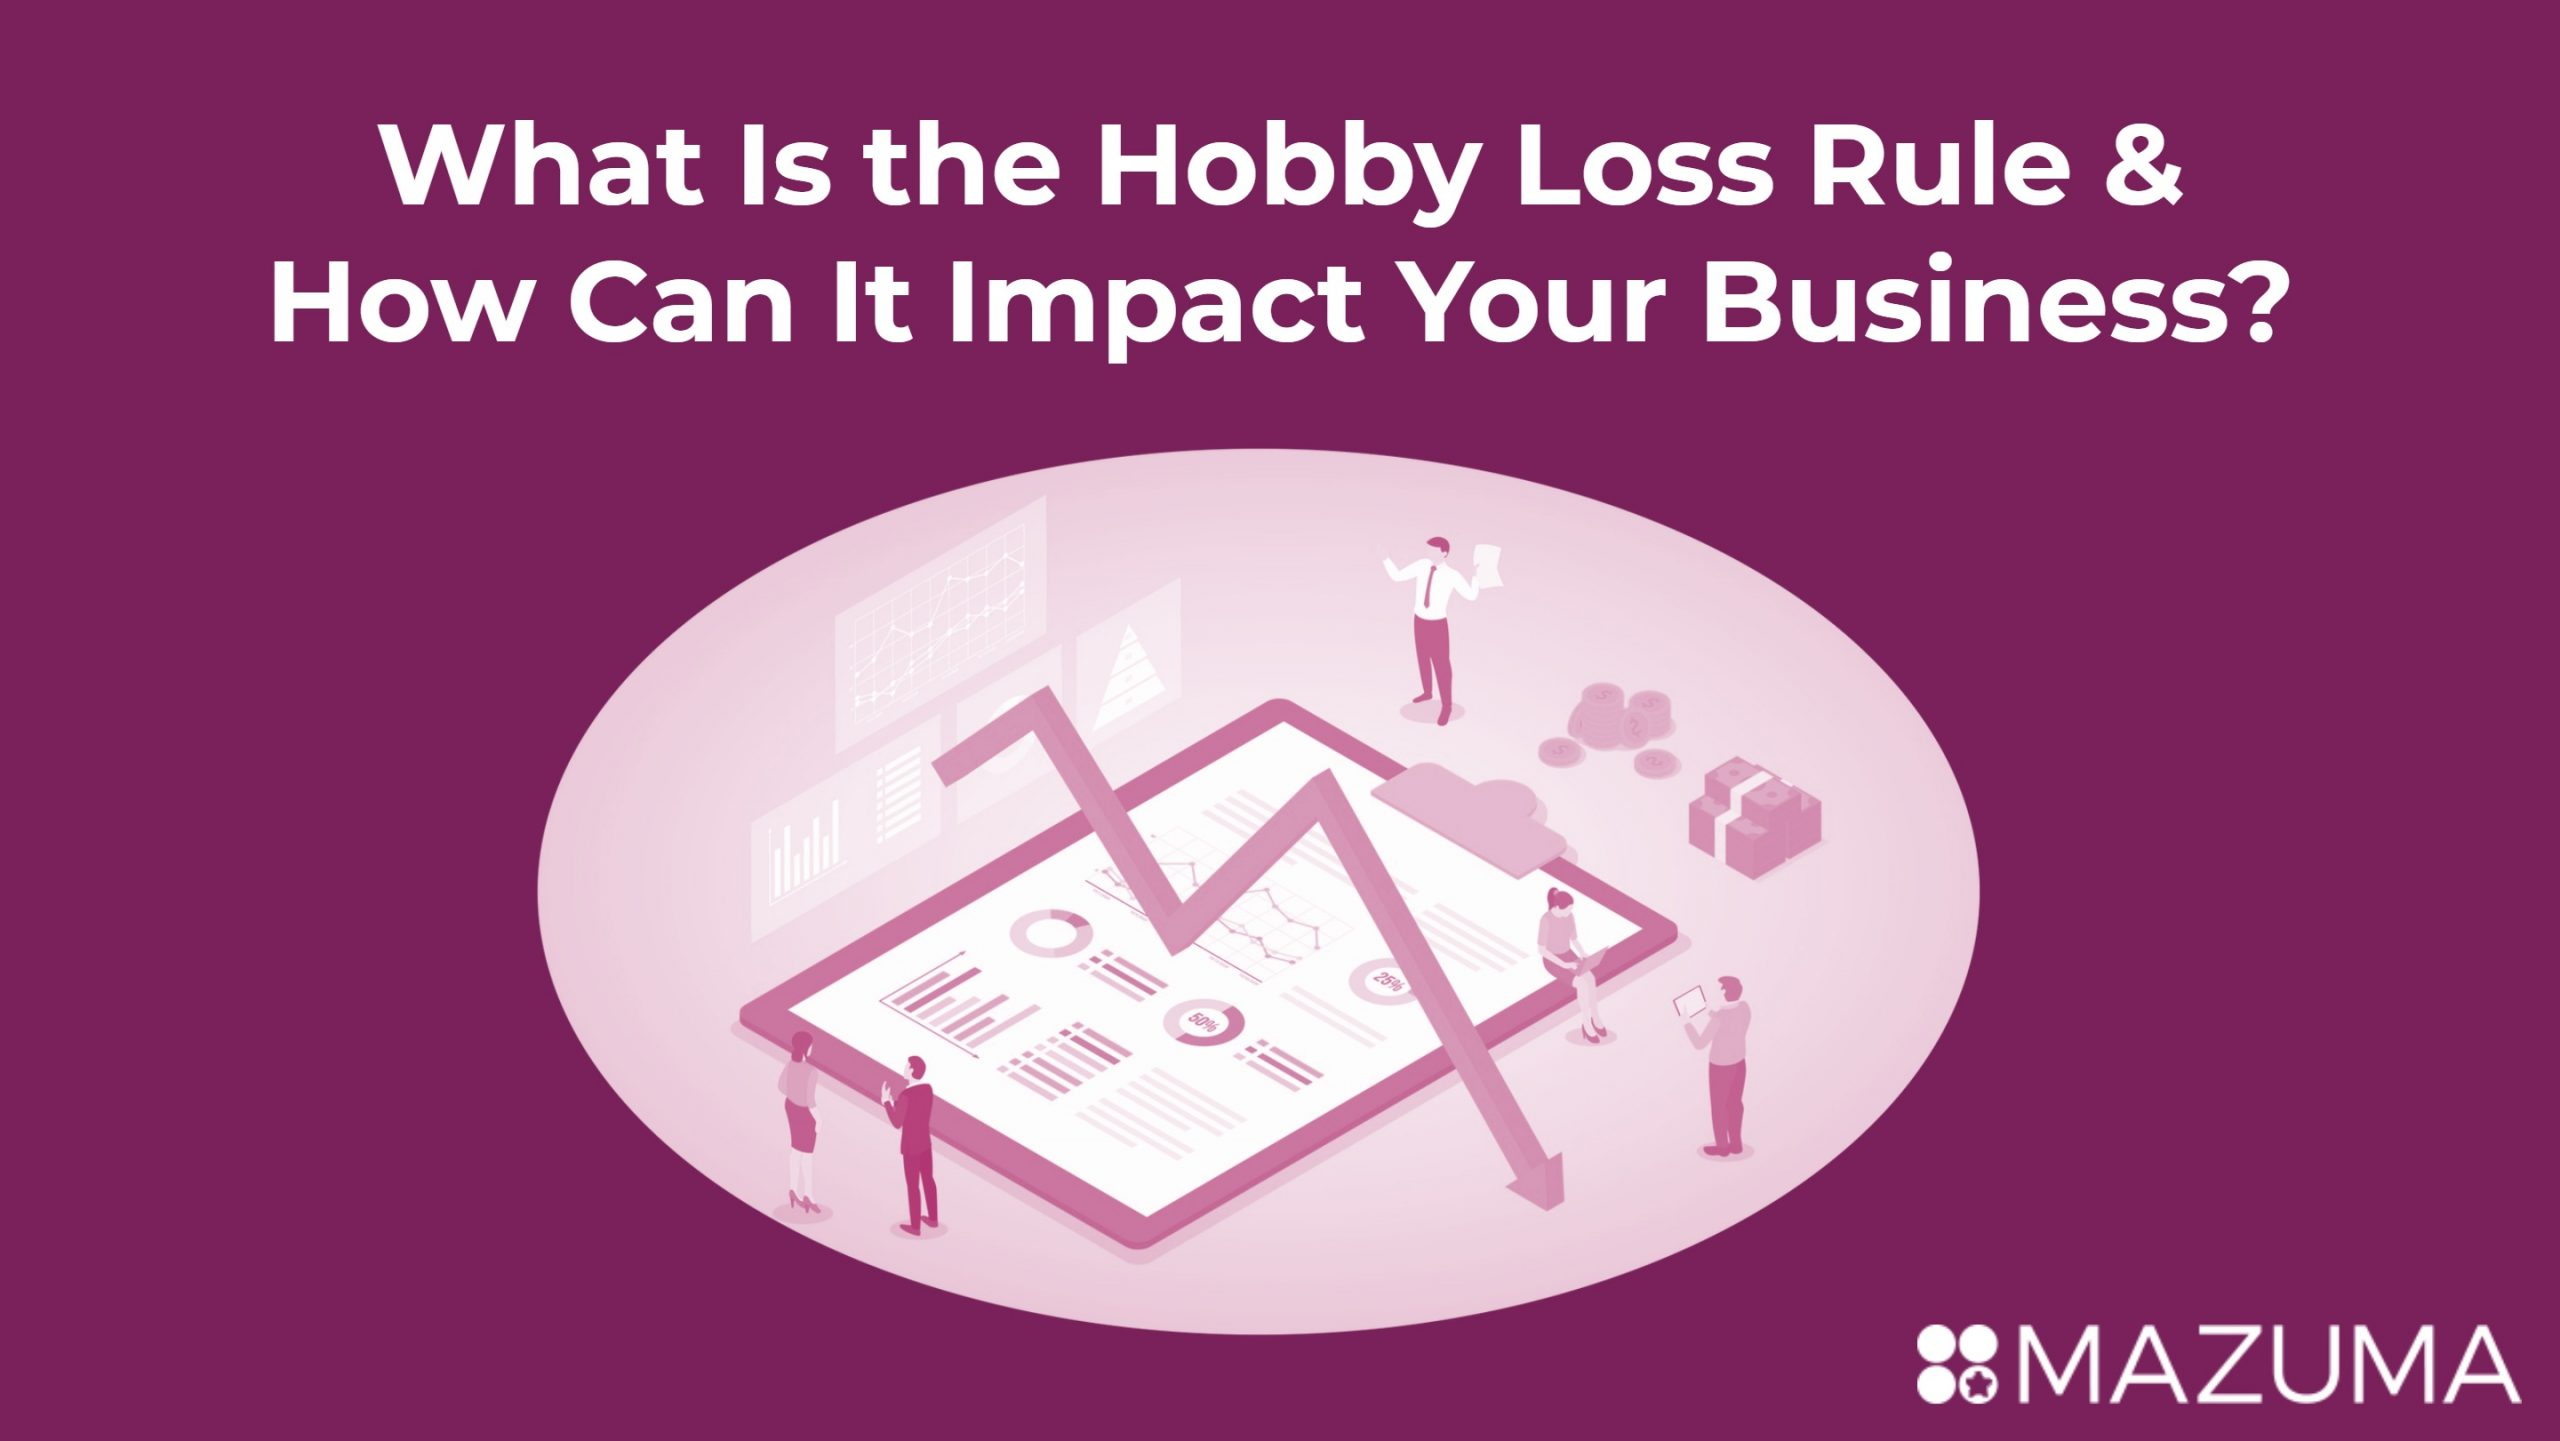 What Is the Hobby Loss Rule & How Can It Impact Your Business?